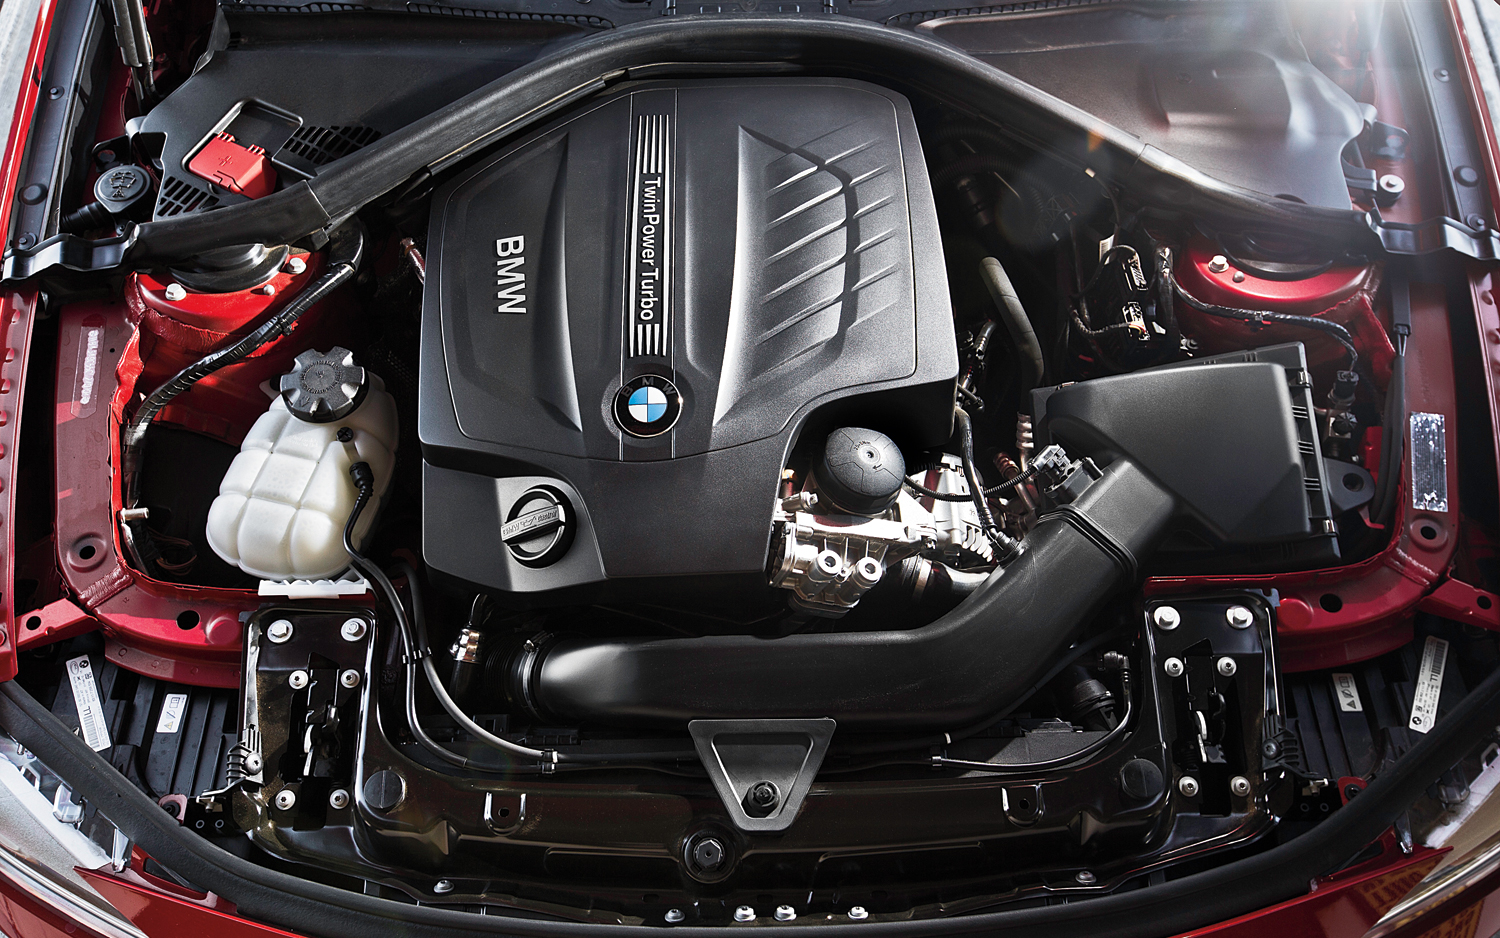 BMW 335 engine